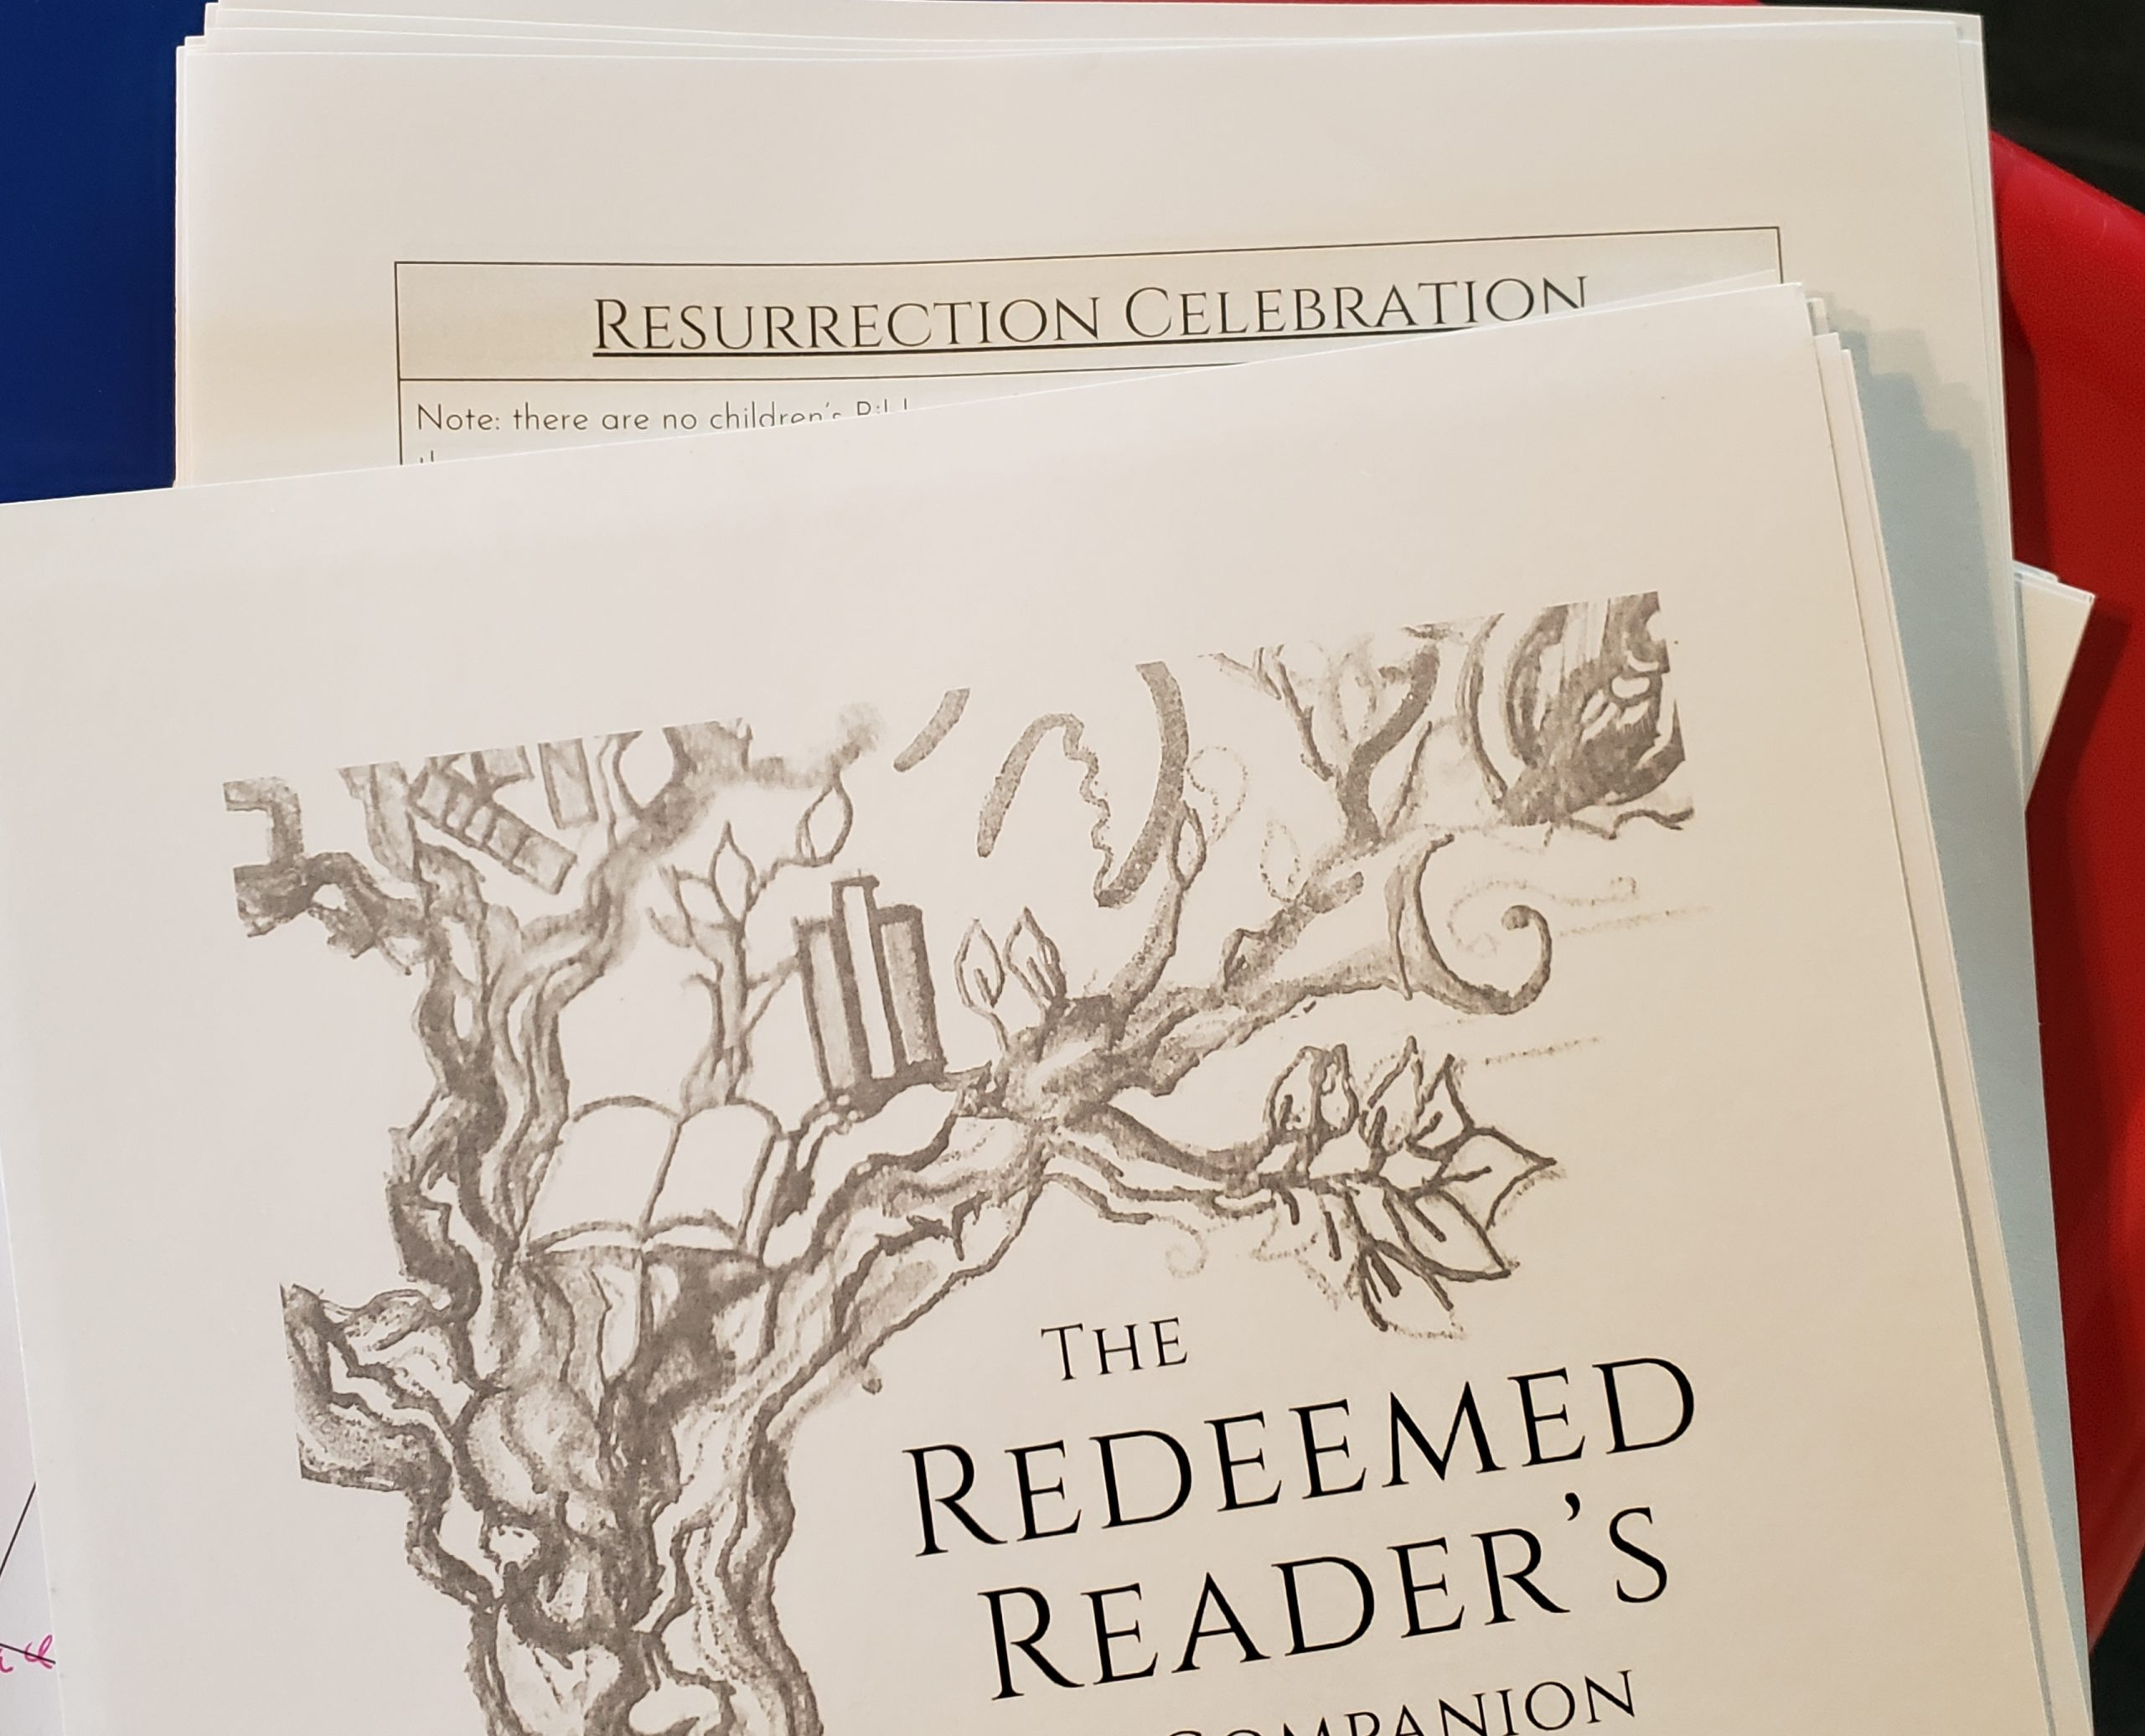 The Redeemed Reader's